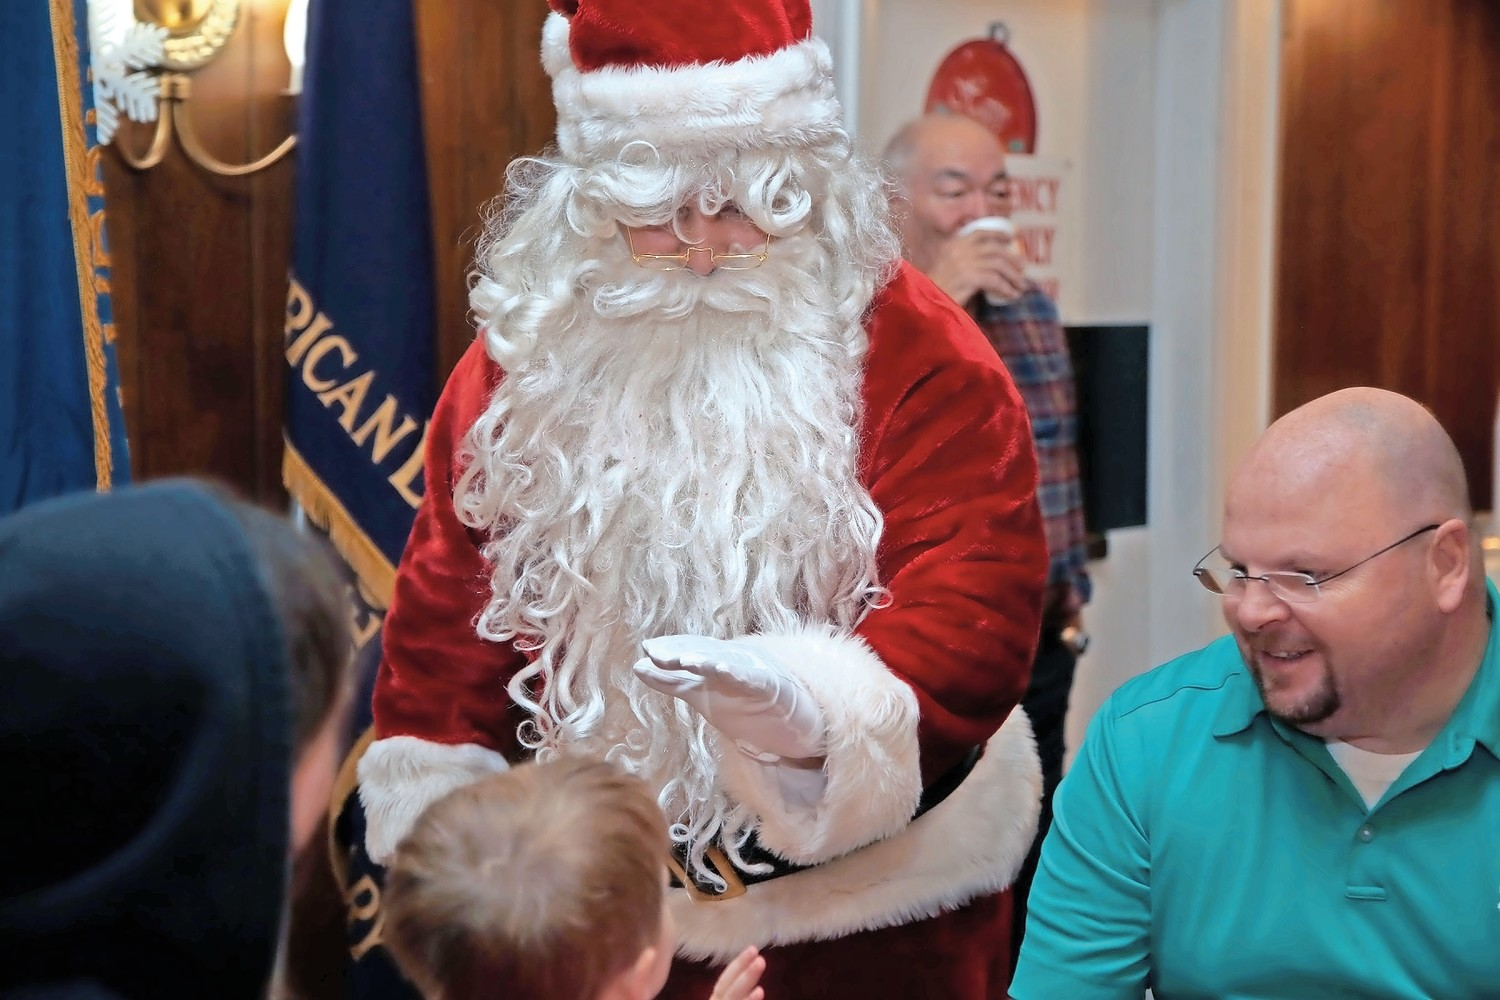 Santa greeted children with high-fives.